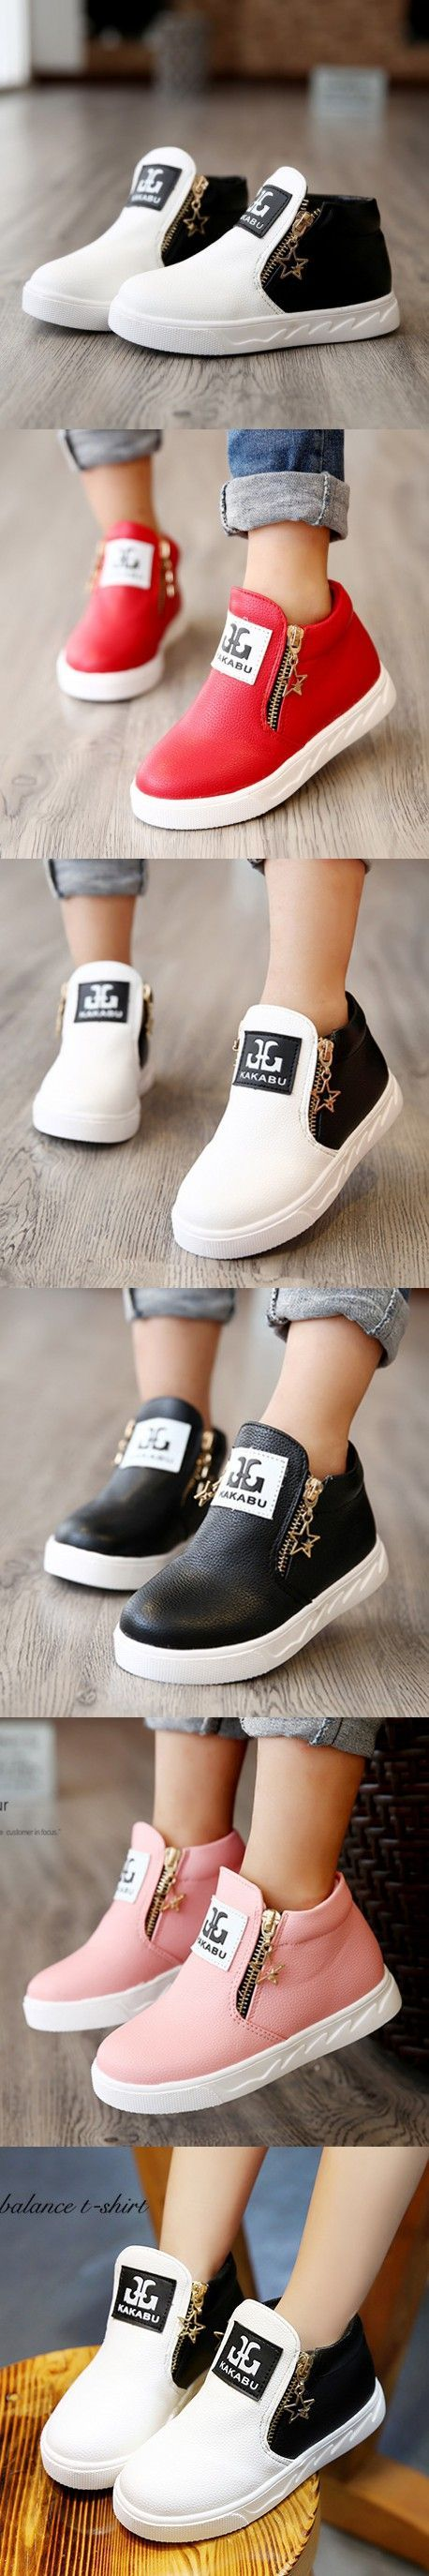 New Arrival Autumn Children Martin Boots Boys Shoes Girls Fashion Ankle Boots Kids Casual Shoes with Zipper $18.09